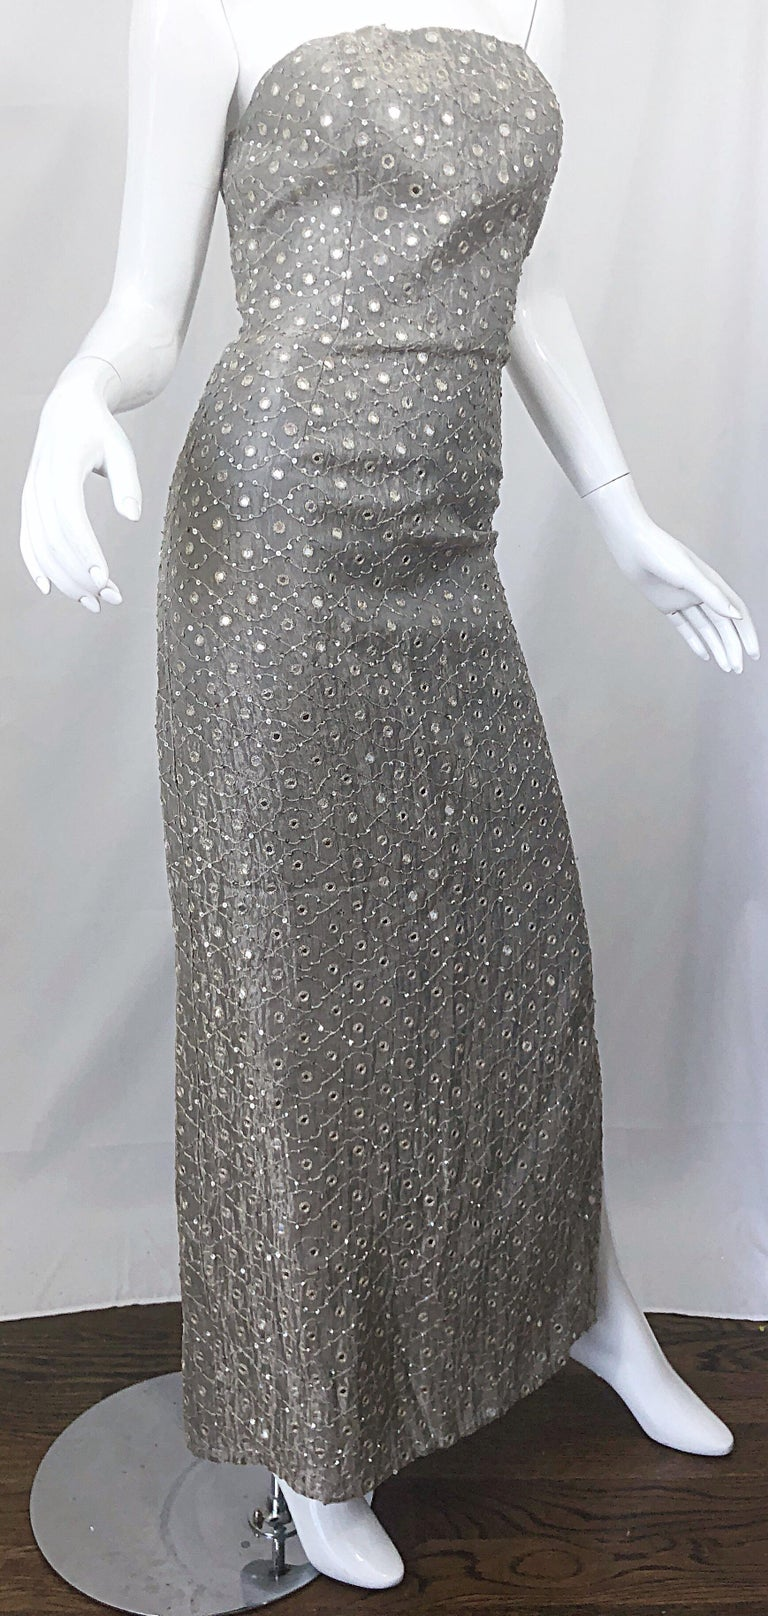 1990s Silver Grey Mirrored Sequins Size 6 Strapless Silk Vintage Gown Dress For Sale 5